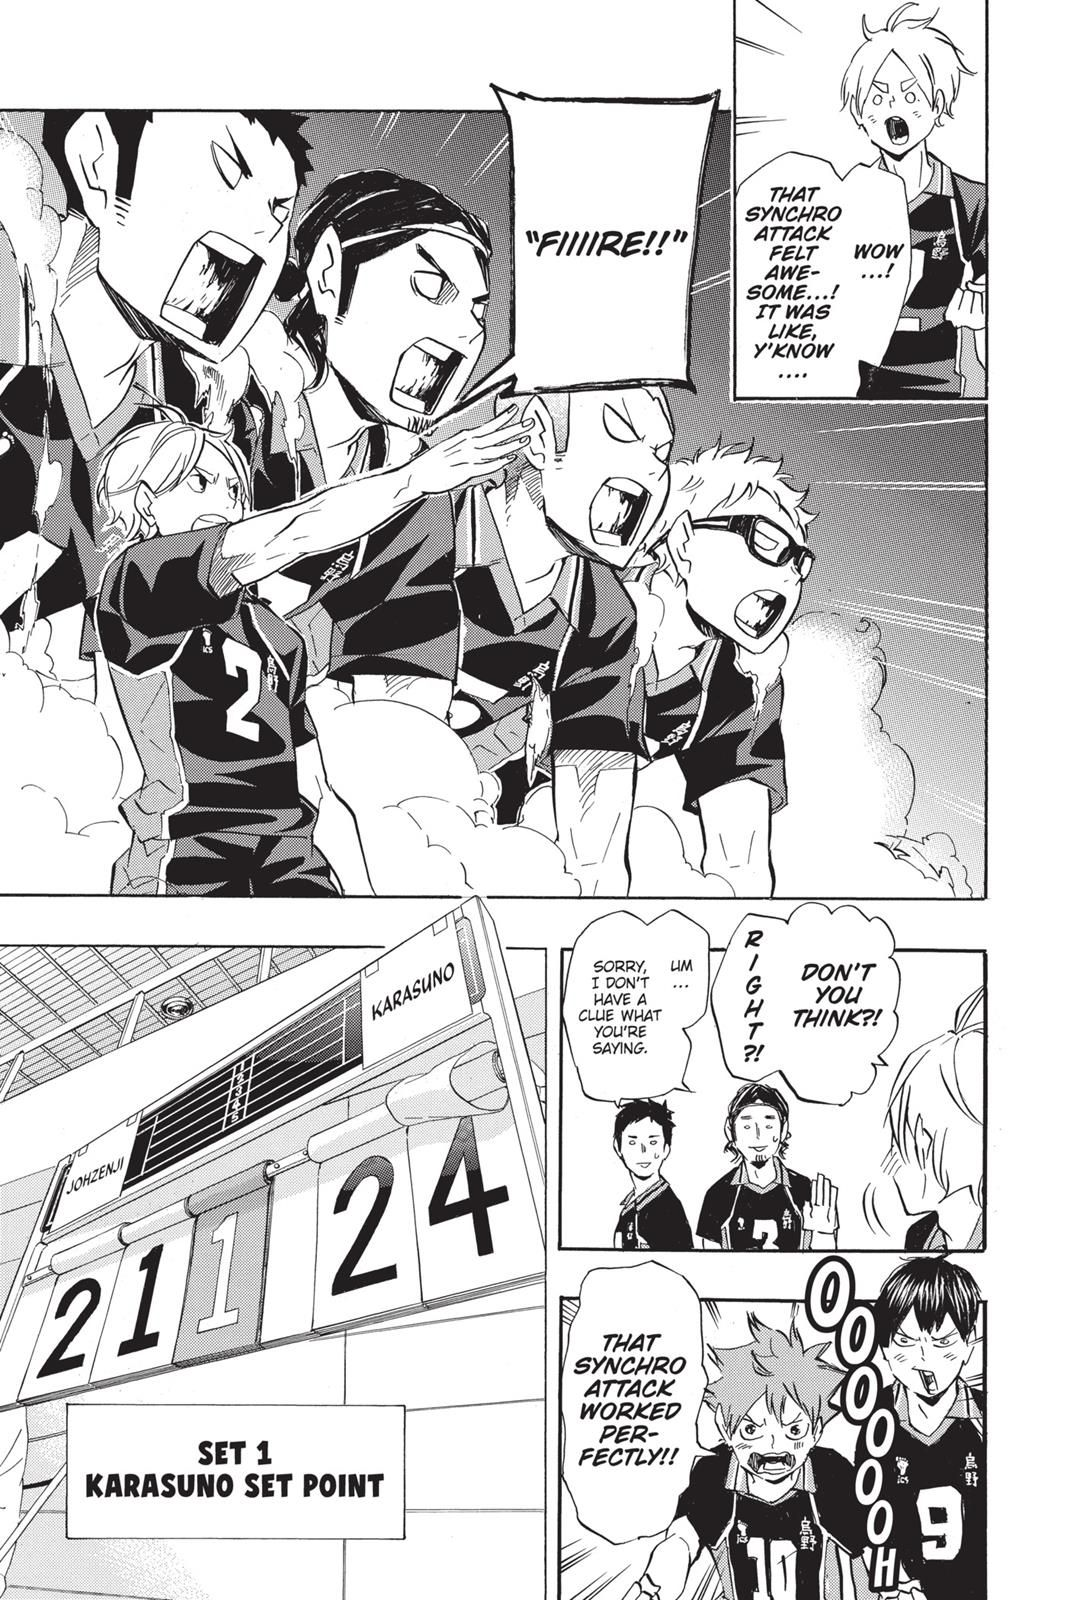 Haikyuu Chapter 111 Read Haikyuu!! Manga Online